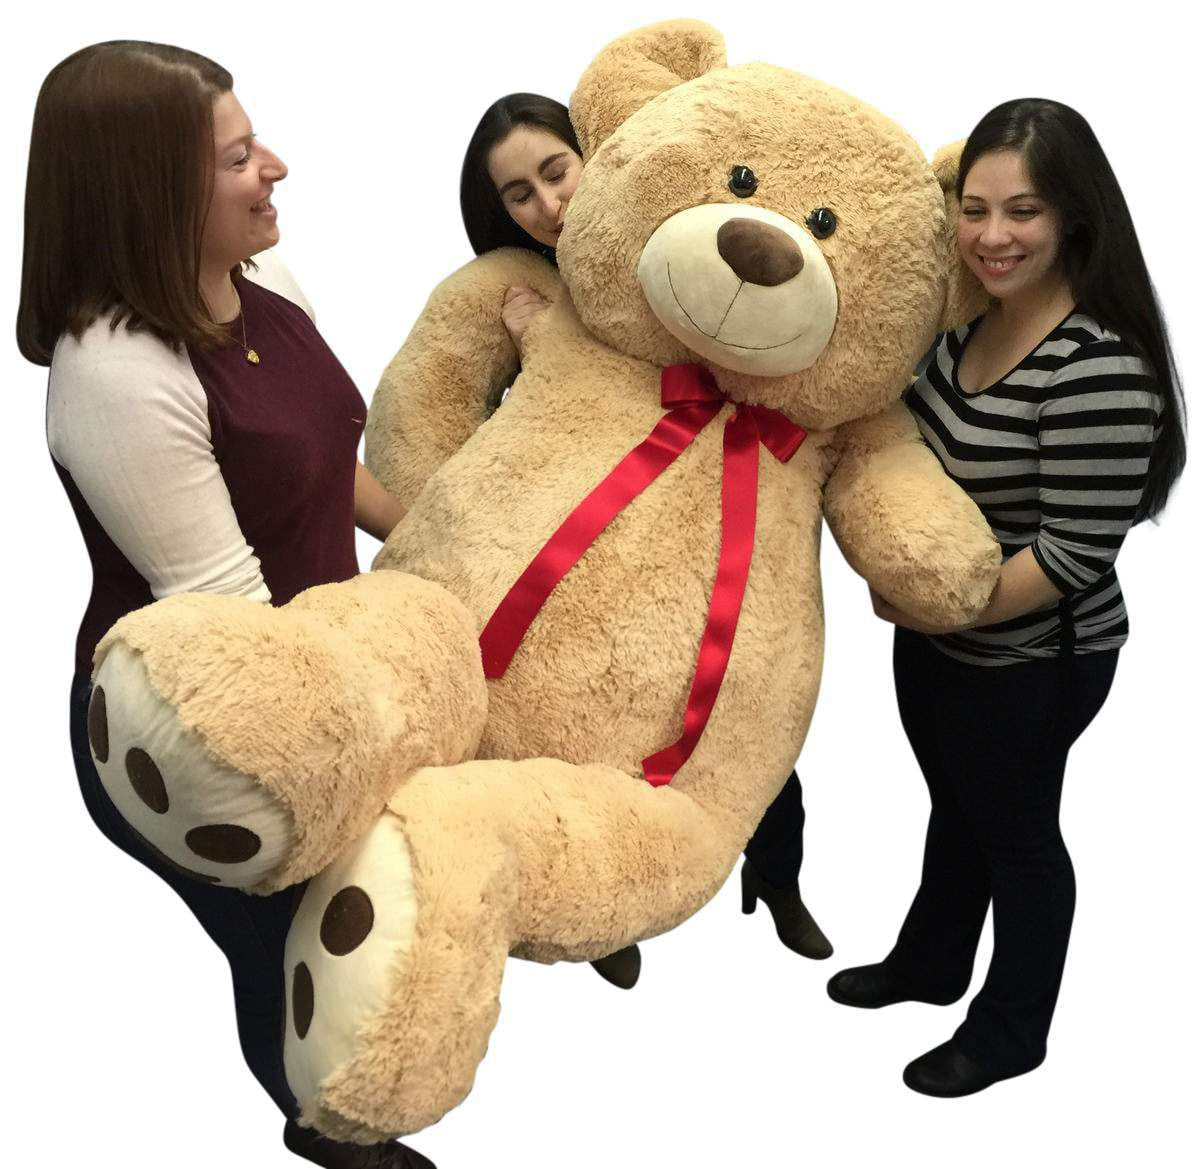 Big Plush Giant 6 Ft Teddy Bear 72 Inch Tan Soft Oversized Teddybear Weighs 22 Pounds by BigPlush